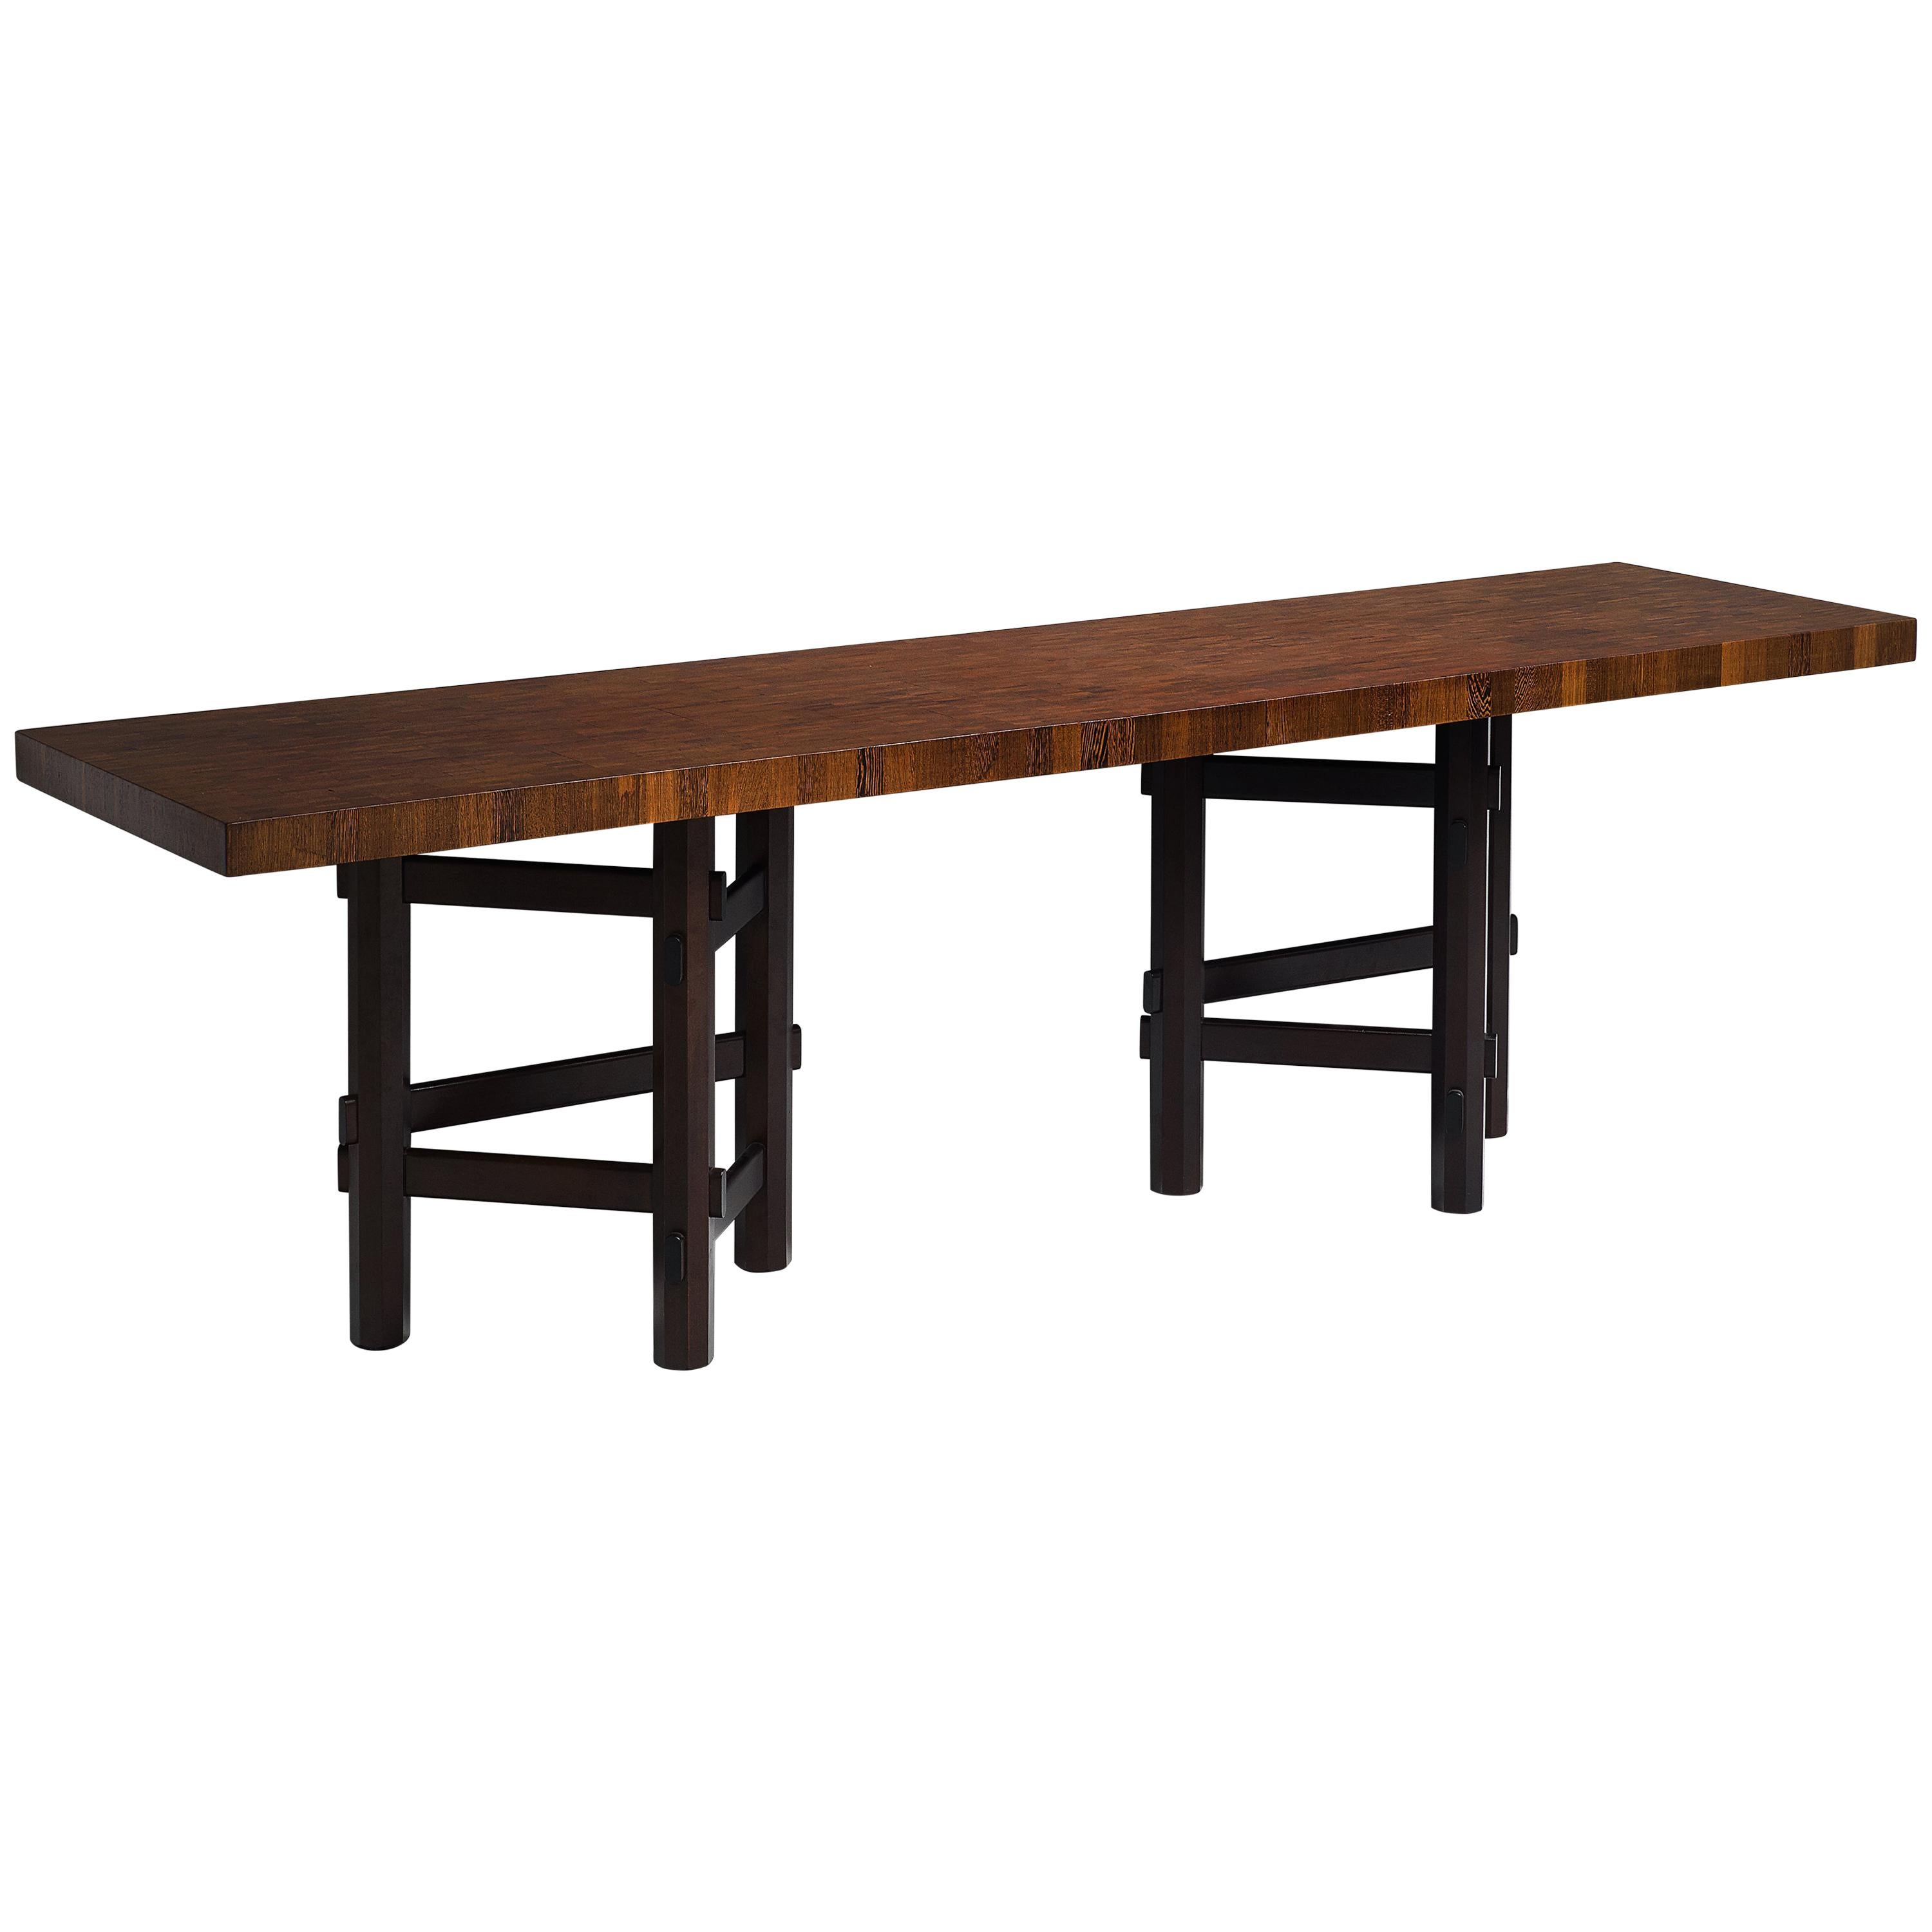 Rare Jan Vlug Console Table in Wengé and Mahogany